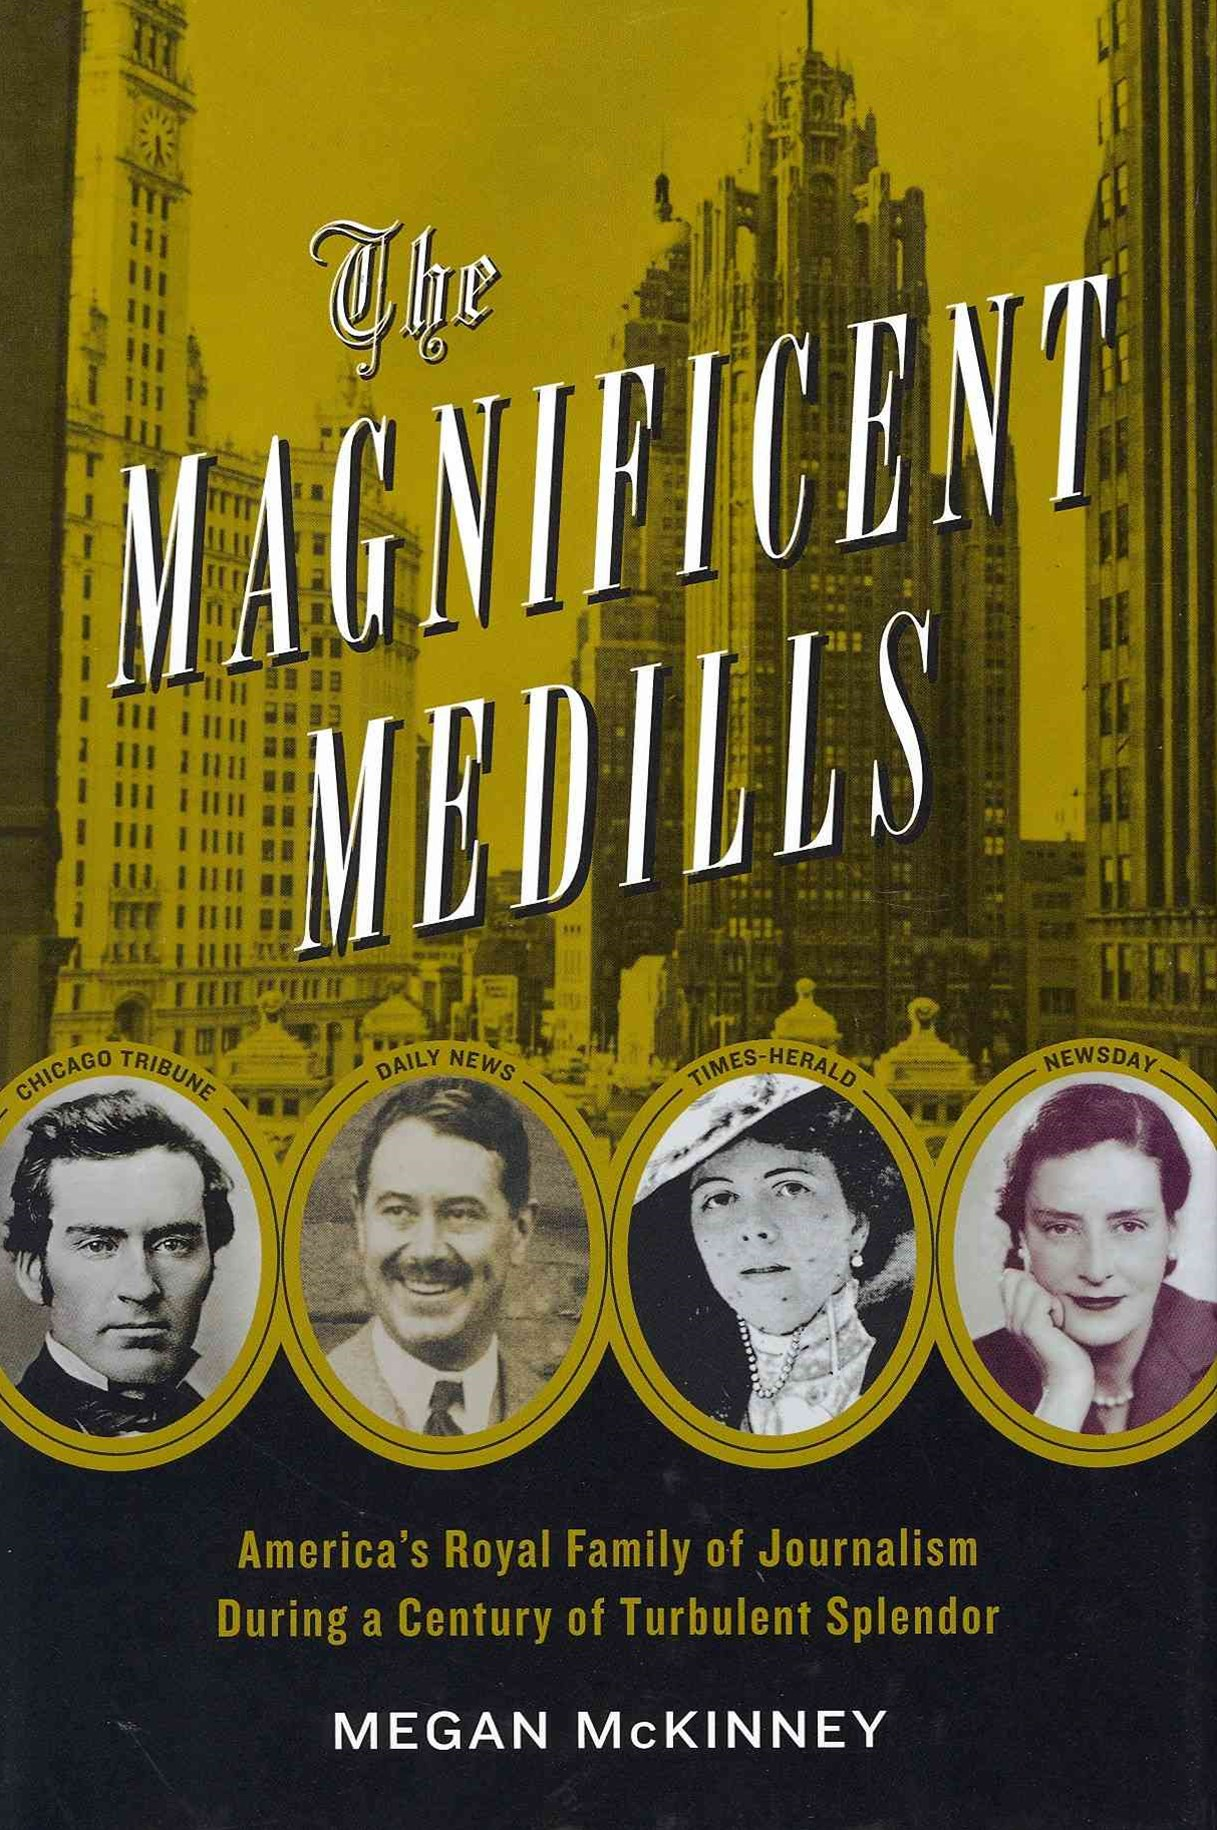 The Magnificent Medills: America's Royal Family of Journalism During a Century of Turbulent Splendor